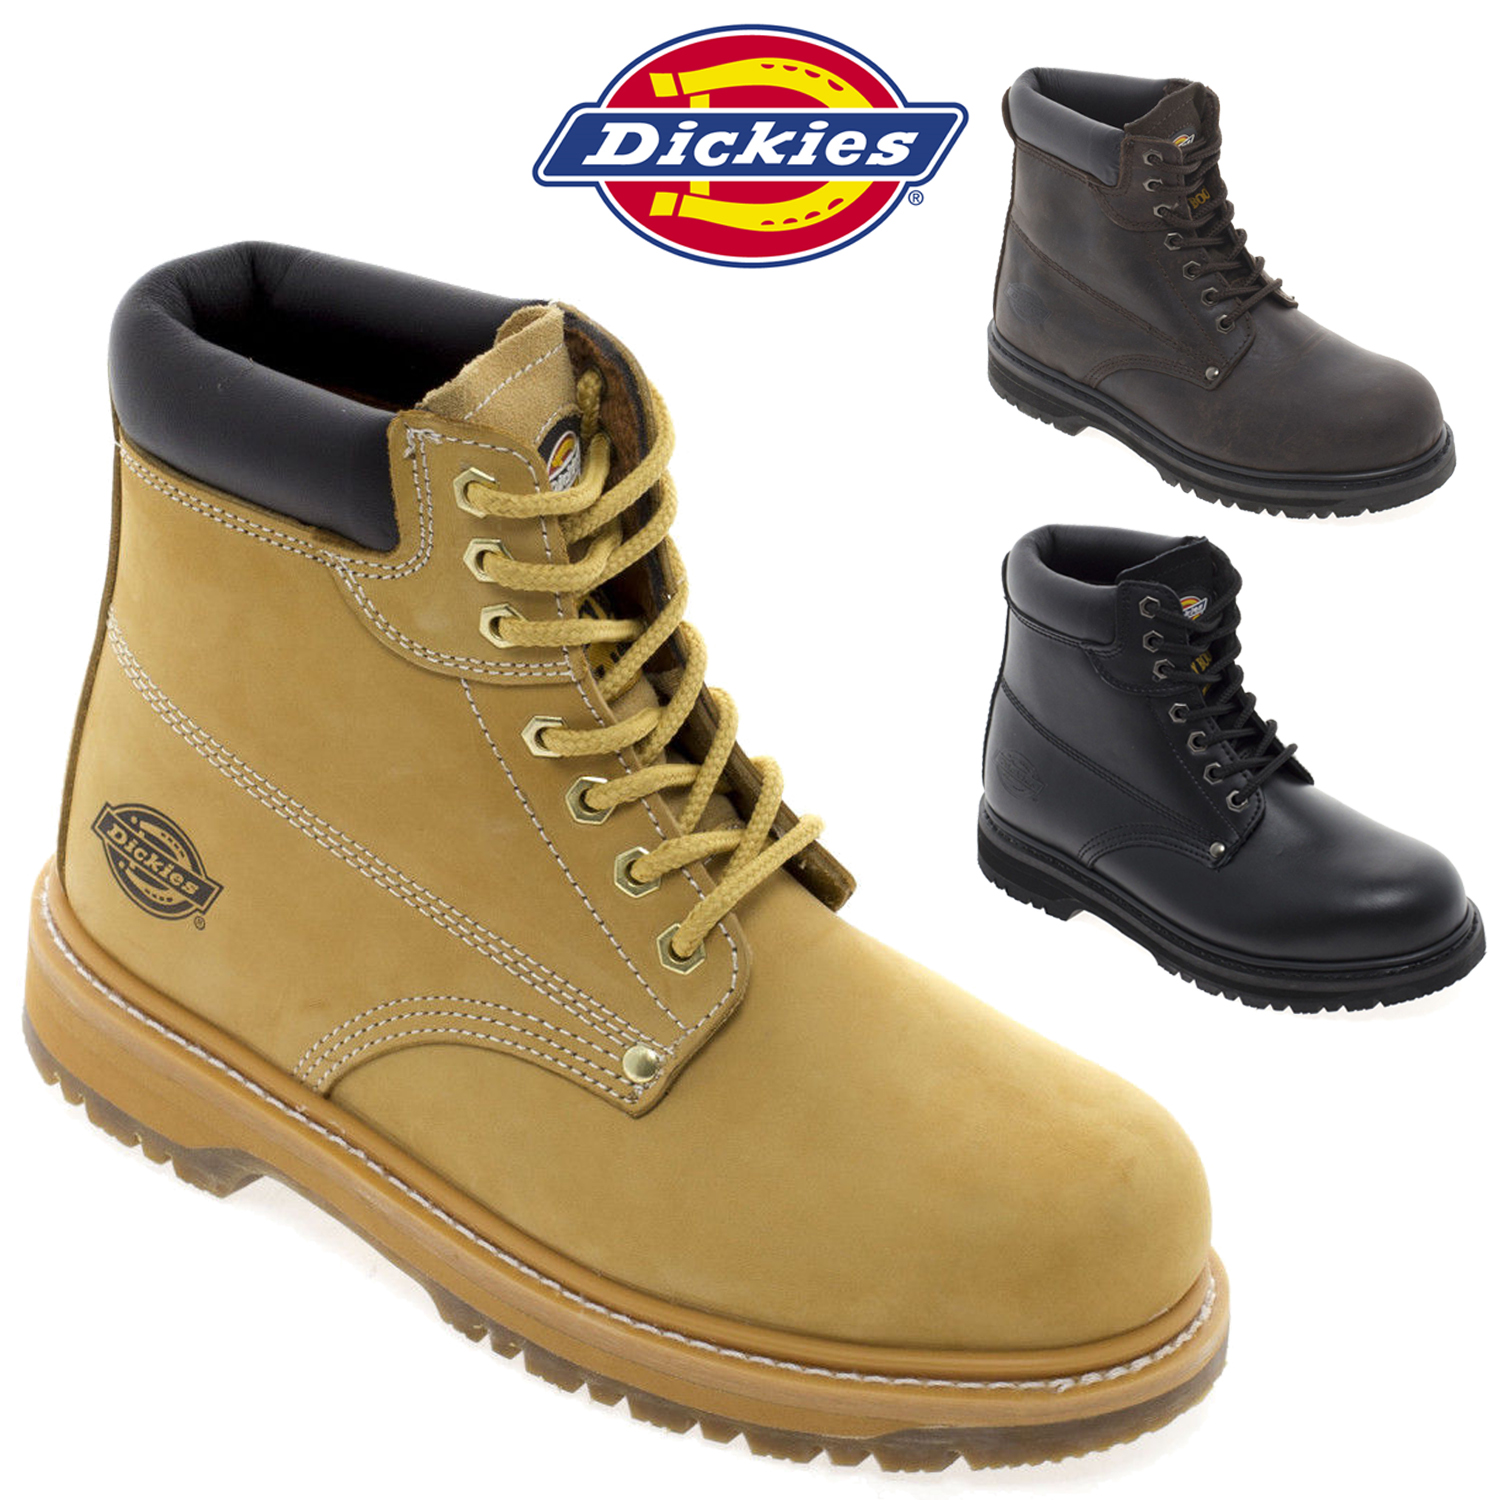 2d75b43f070 Details about Dickies FA23200 Cleveland Safety Work Boot Mens Leather  Workwear Shoes Footwear